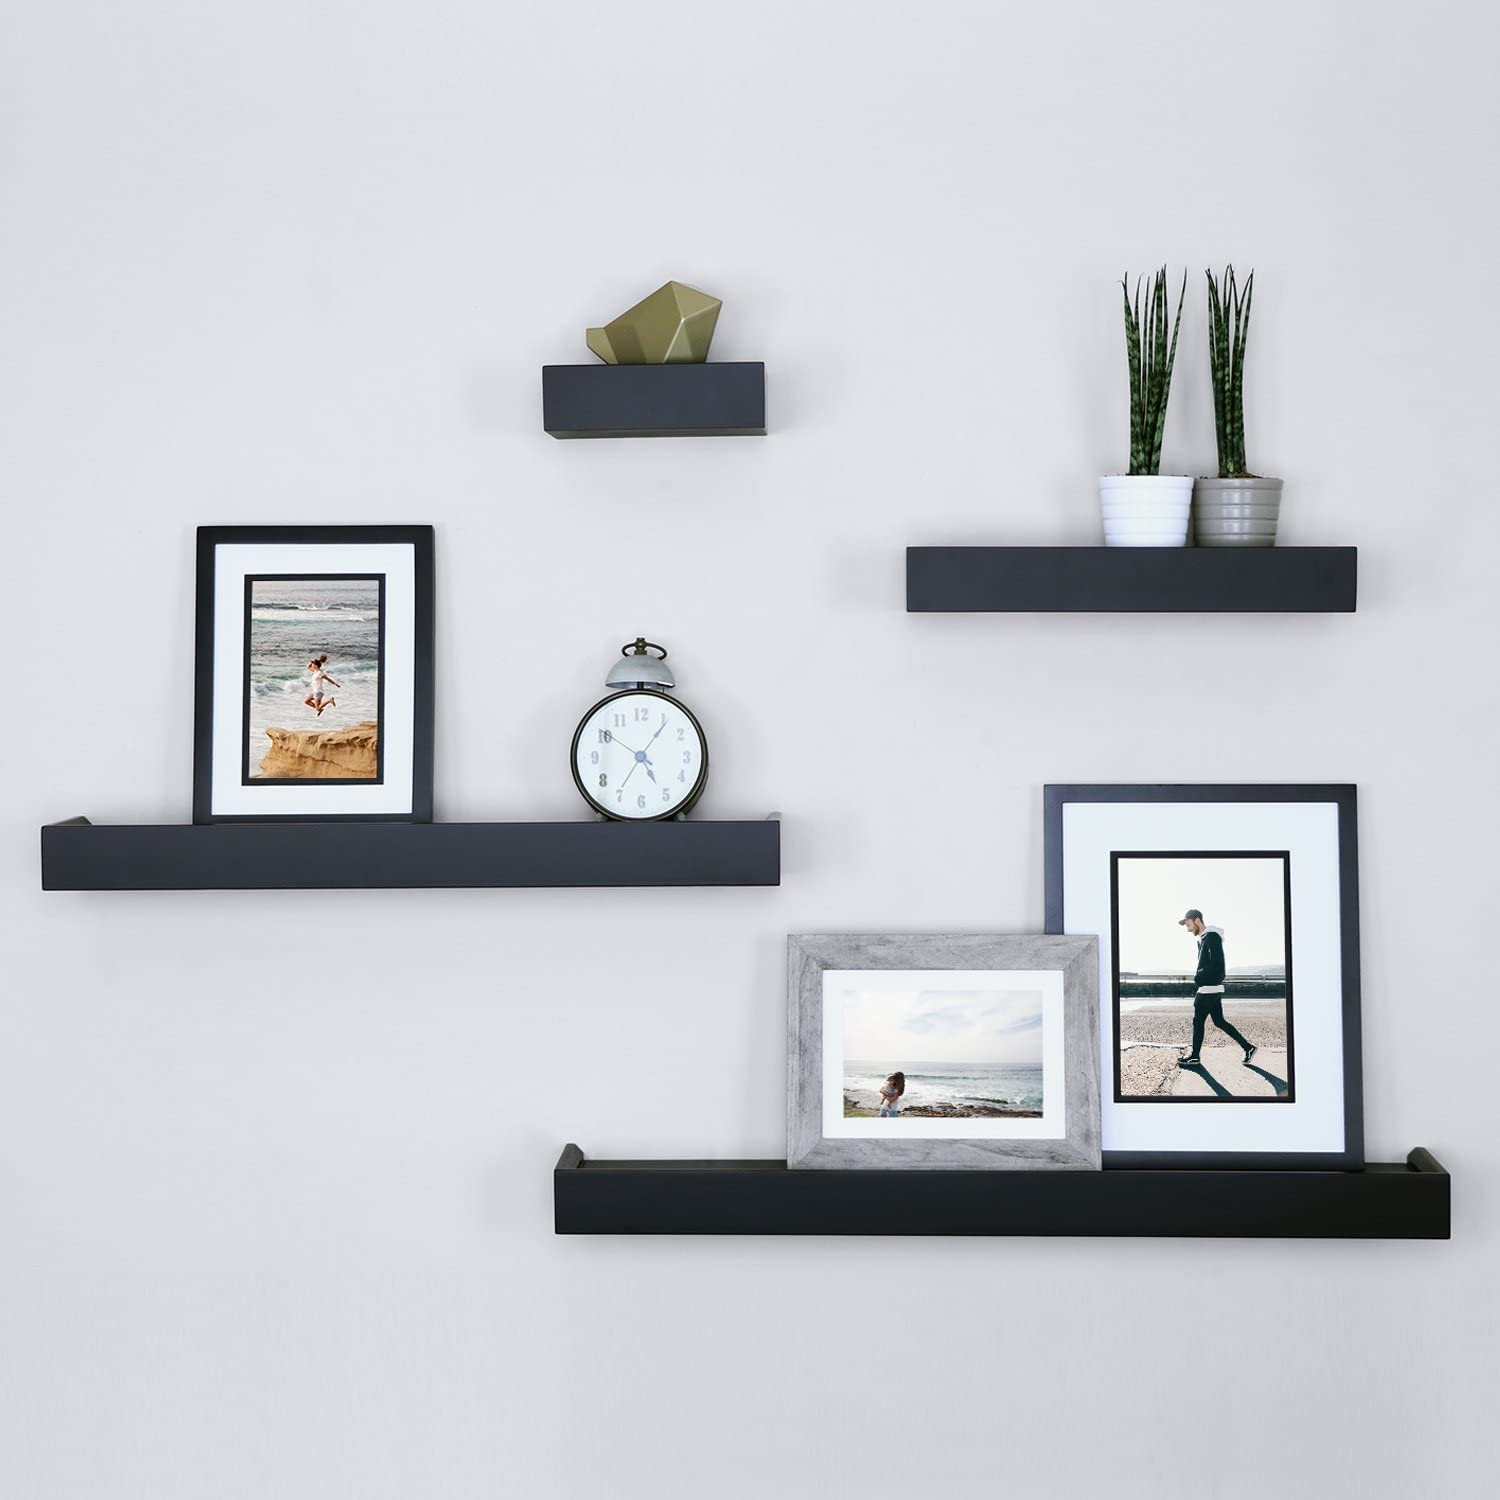 Ballucci Modern Ledge Wall Shelves, Set of 10, Black